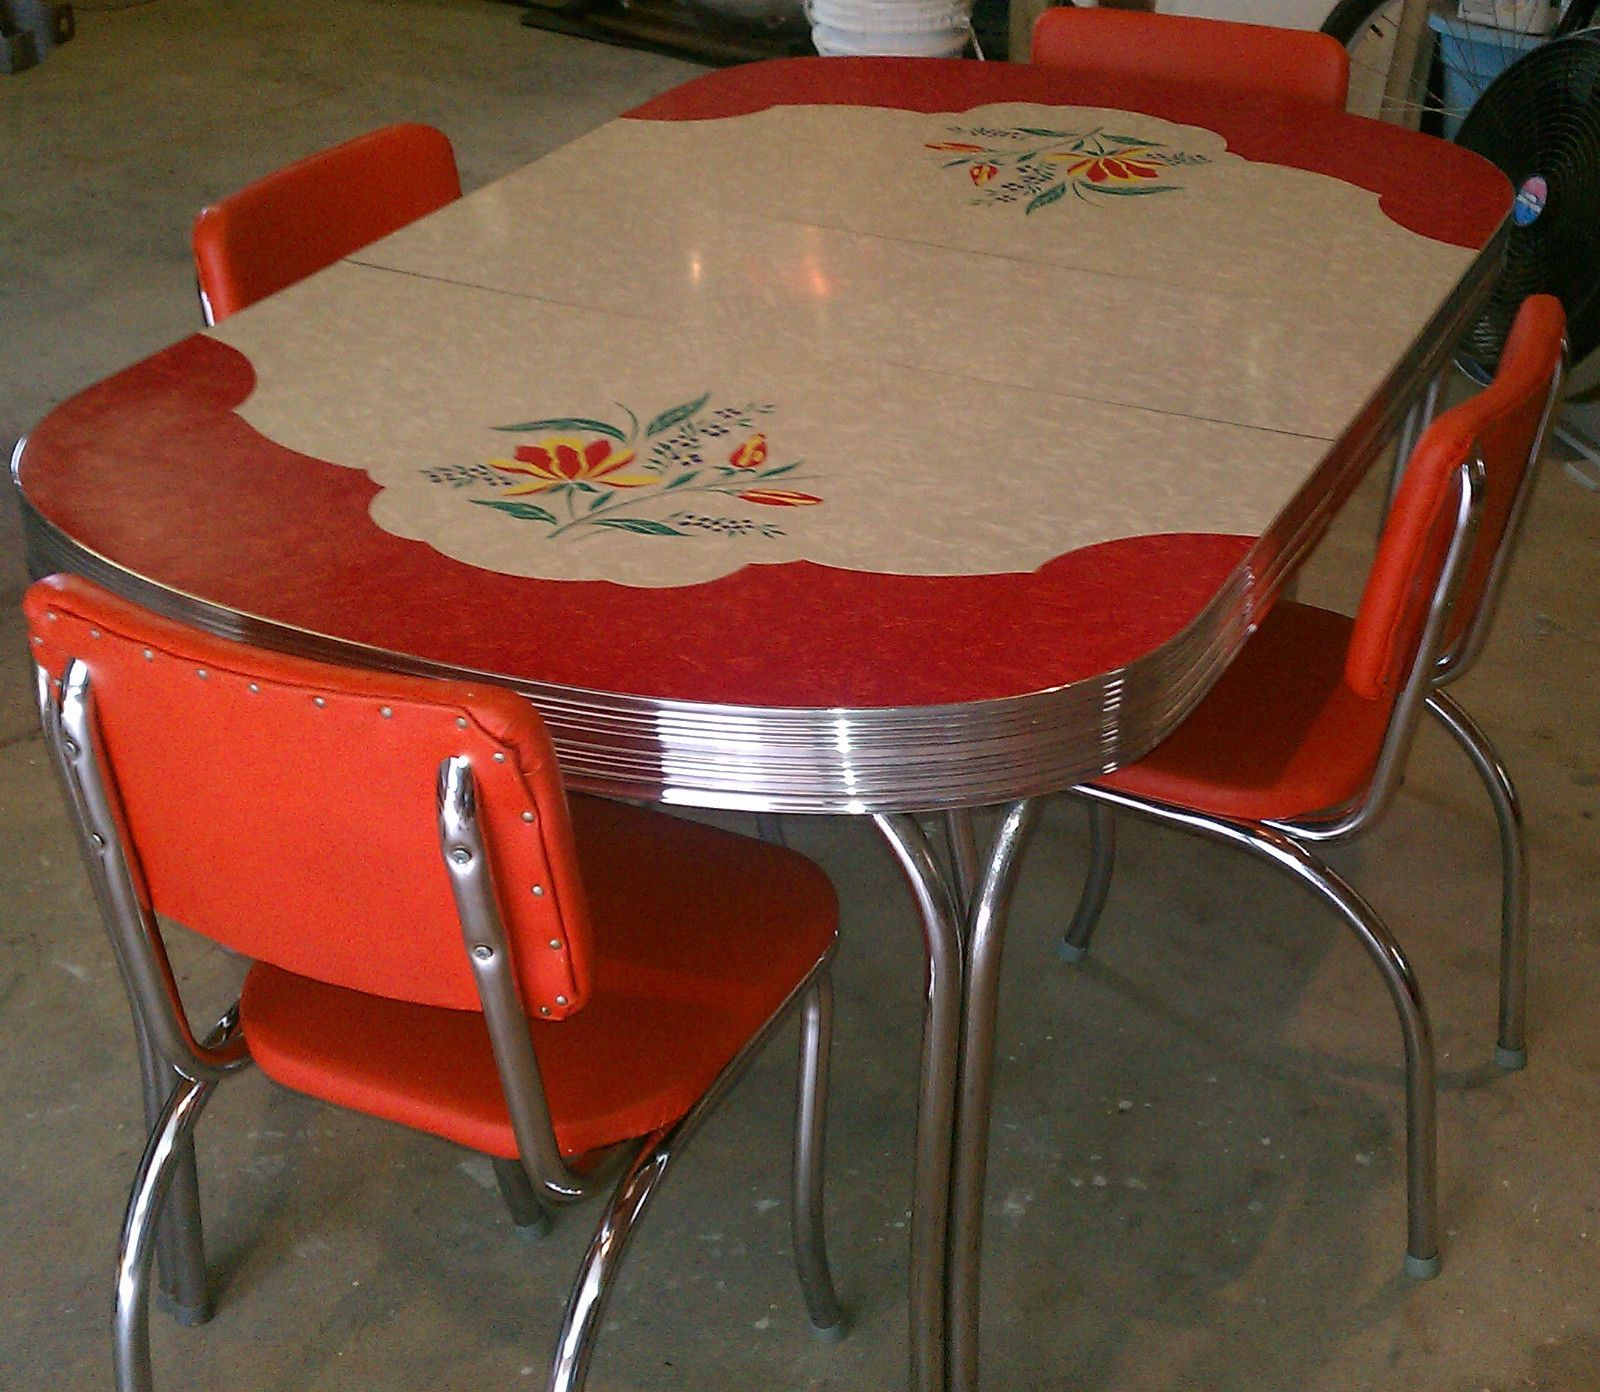 Red Kitchen Table: Vintage Kitchen Formica Table 4 Chairs Chrome Orange Red